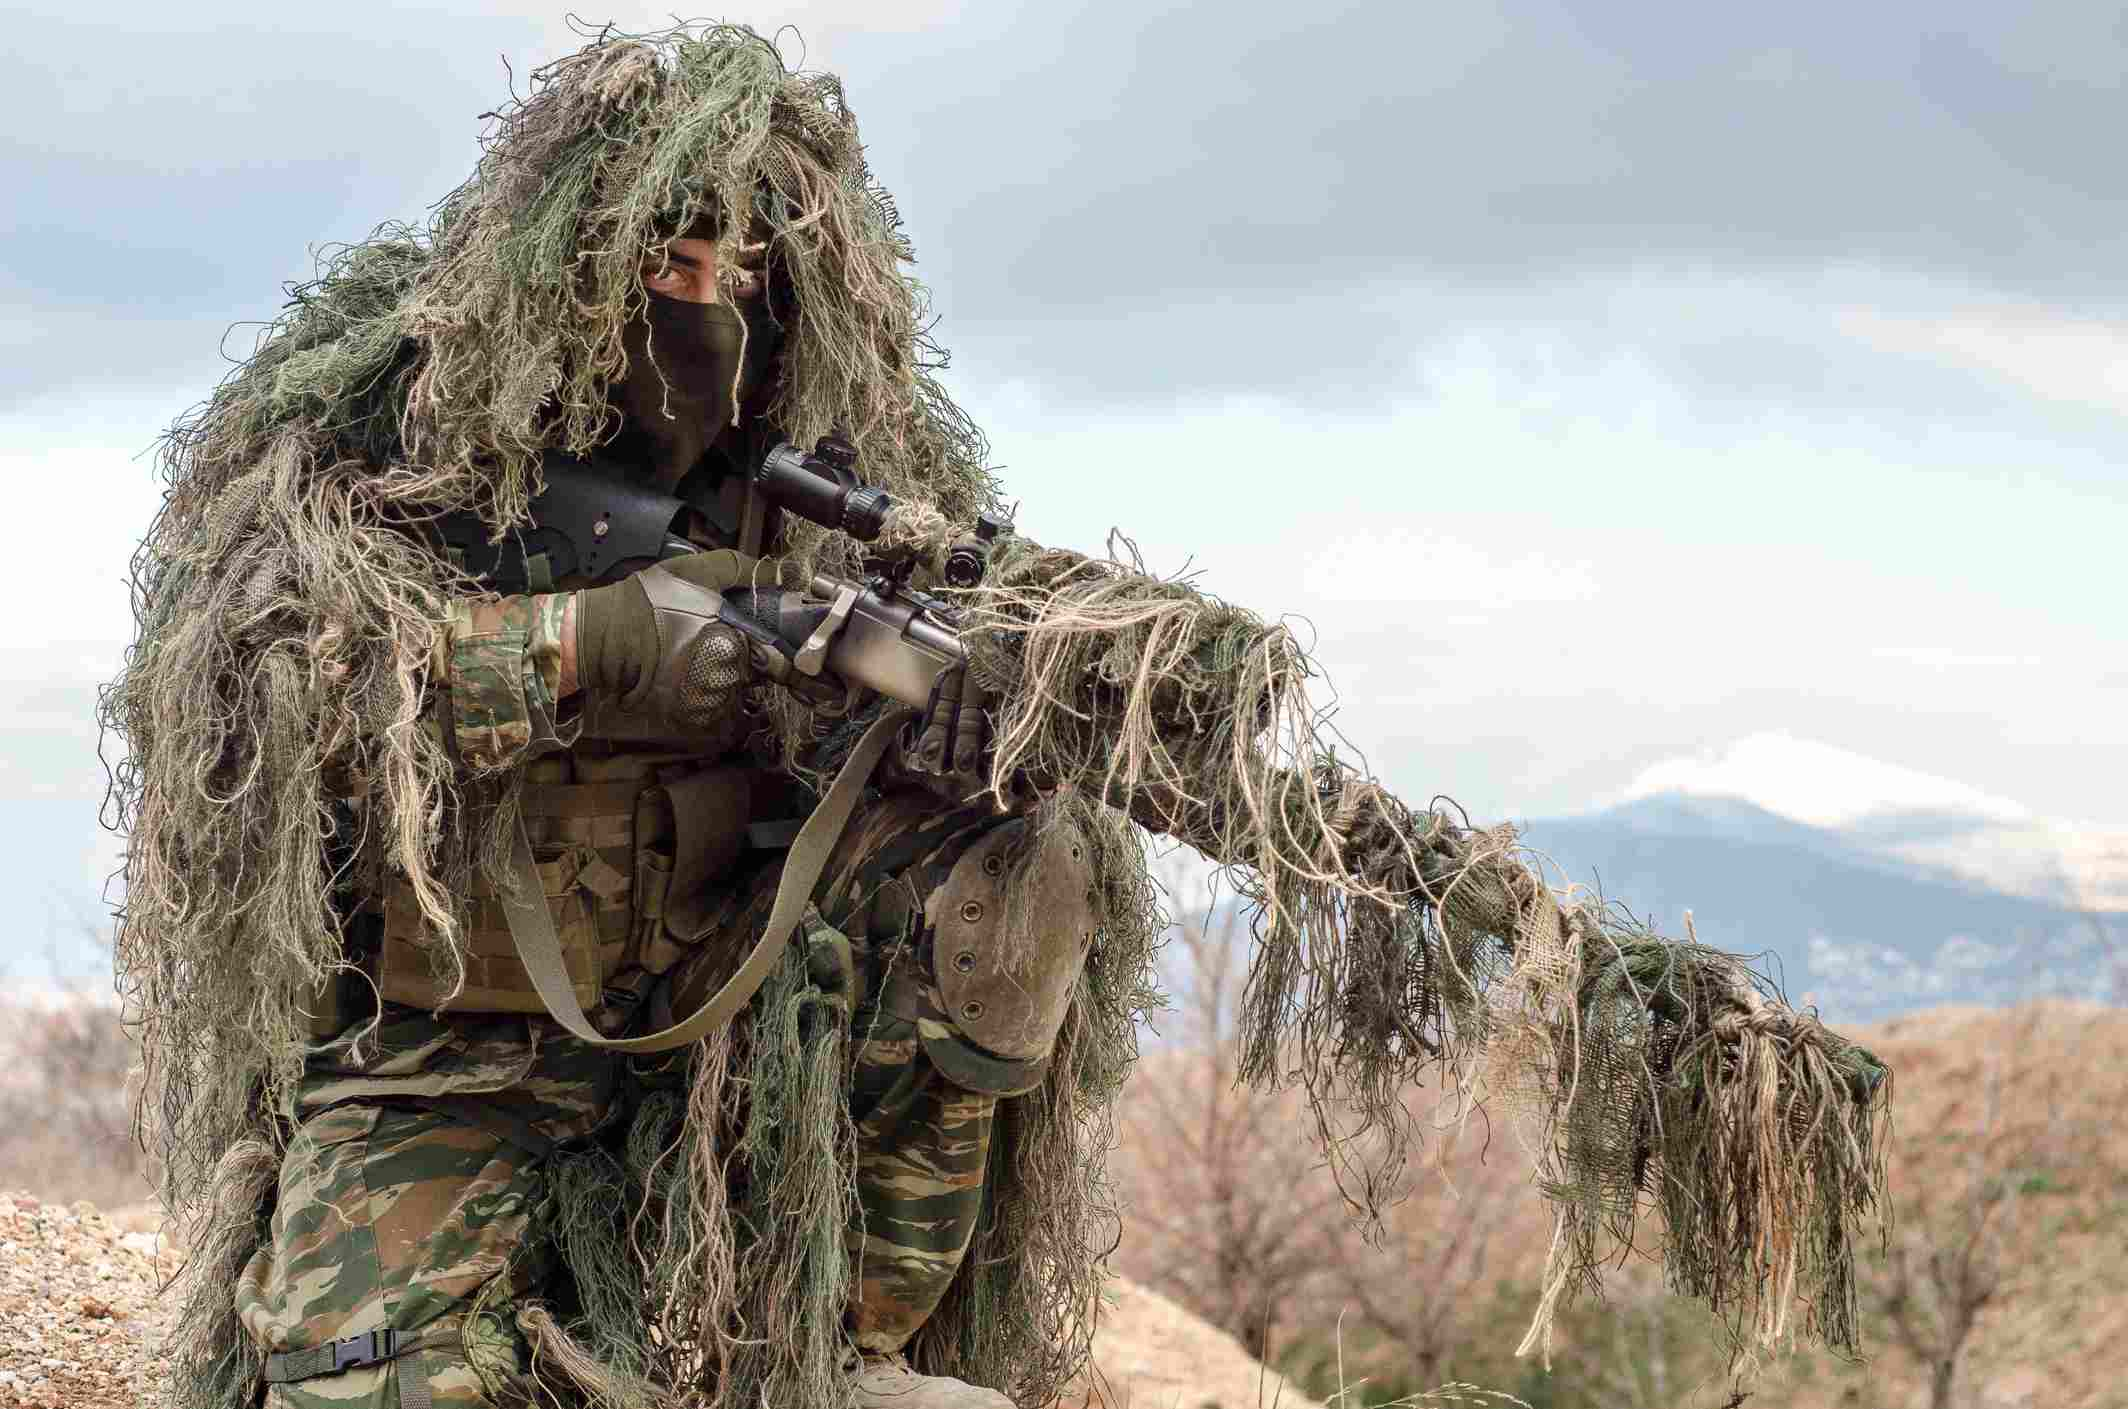 US Army soldier in Ghillie suit